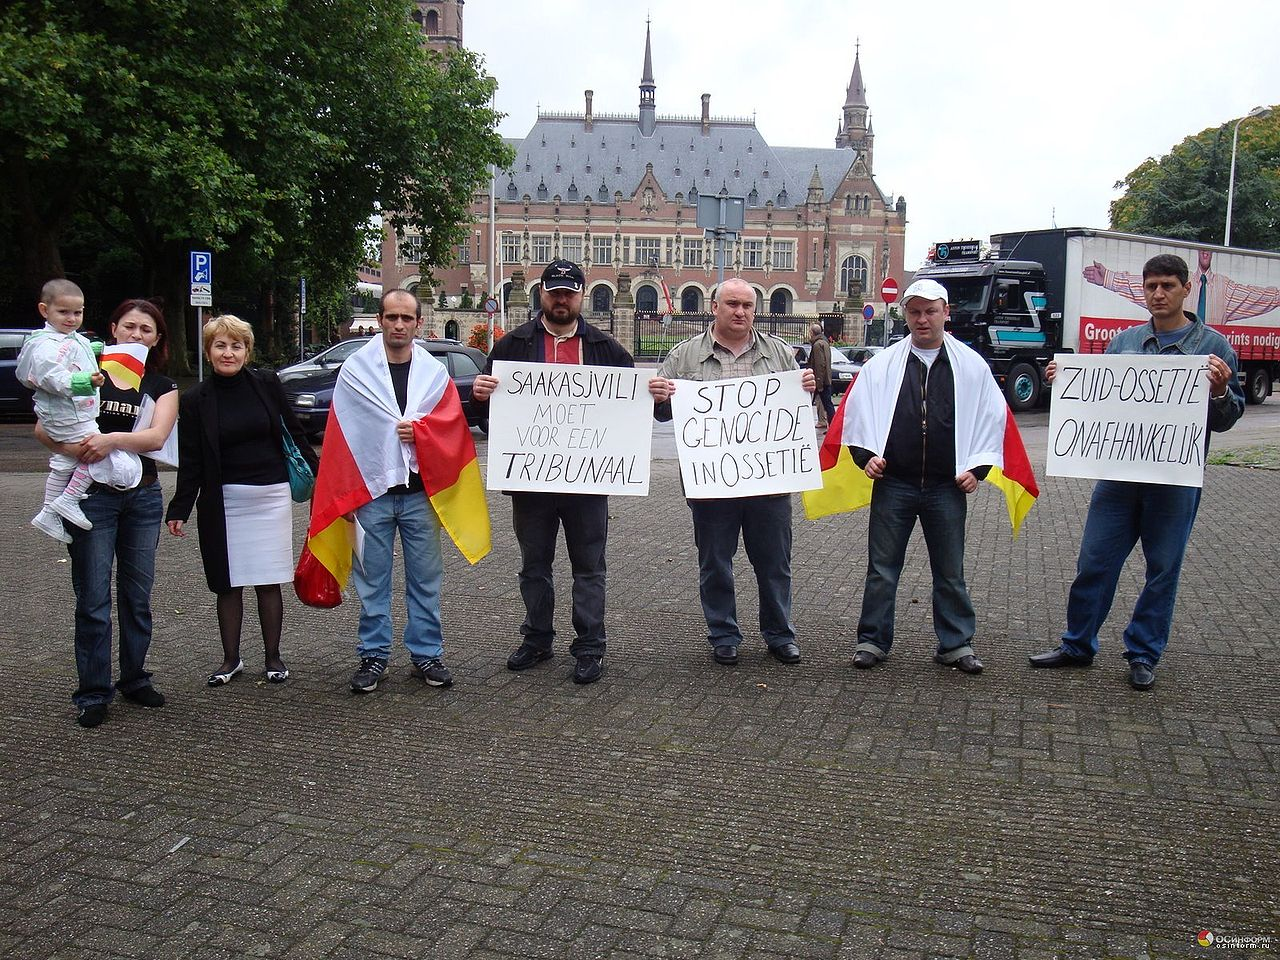 Ossetian protest in the Hague-1.jpg